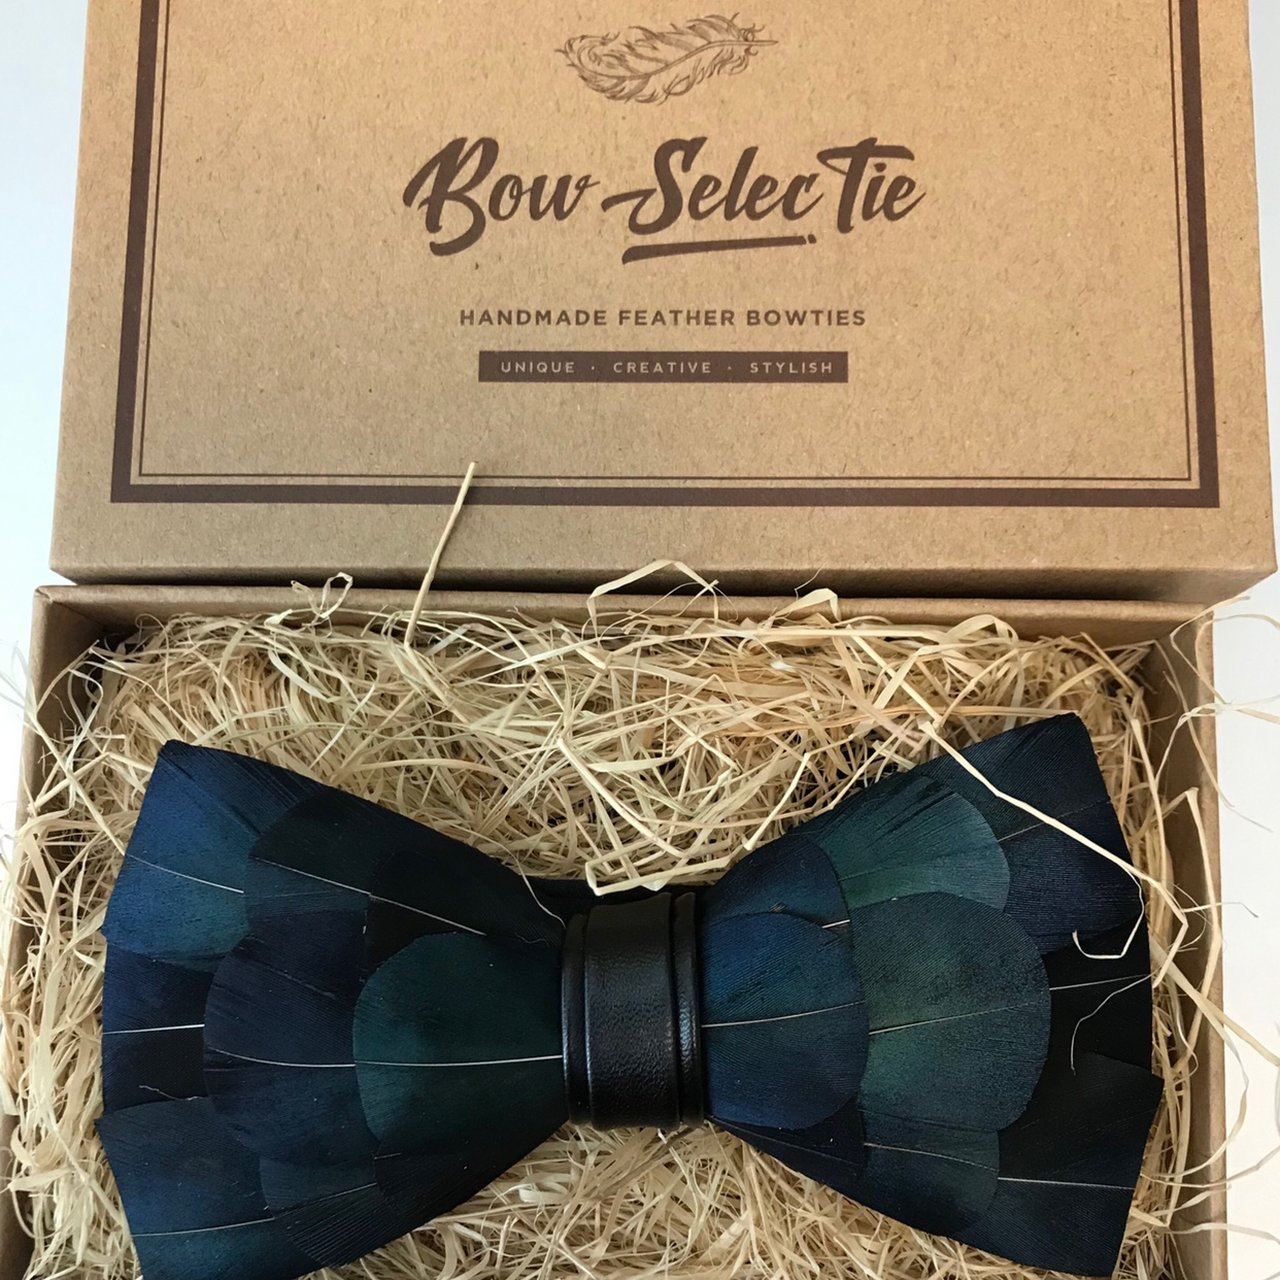 """fad2641ecba1 Blue Feather"""" Bow Tie🦋🔥 """"Bow - Selectie"""" Brand • Extra a - Depop"""